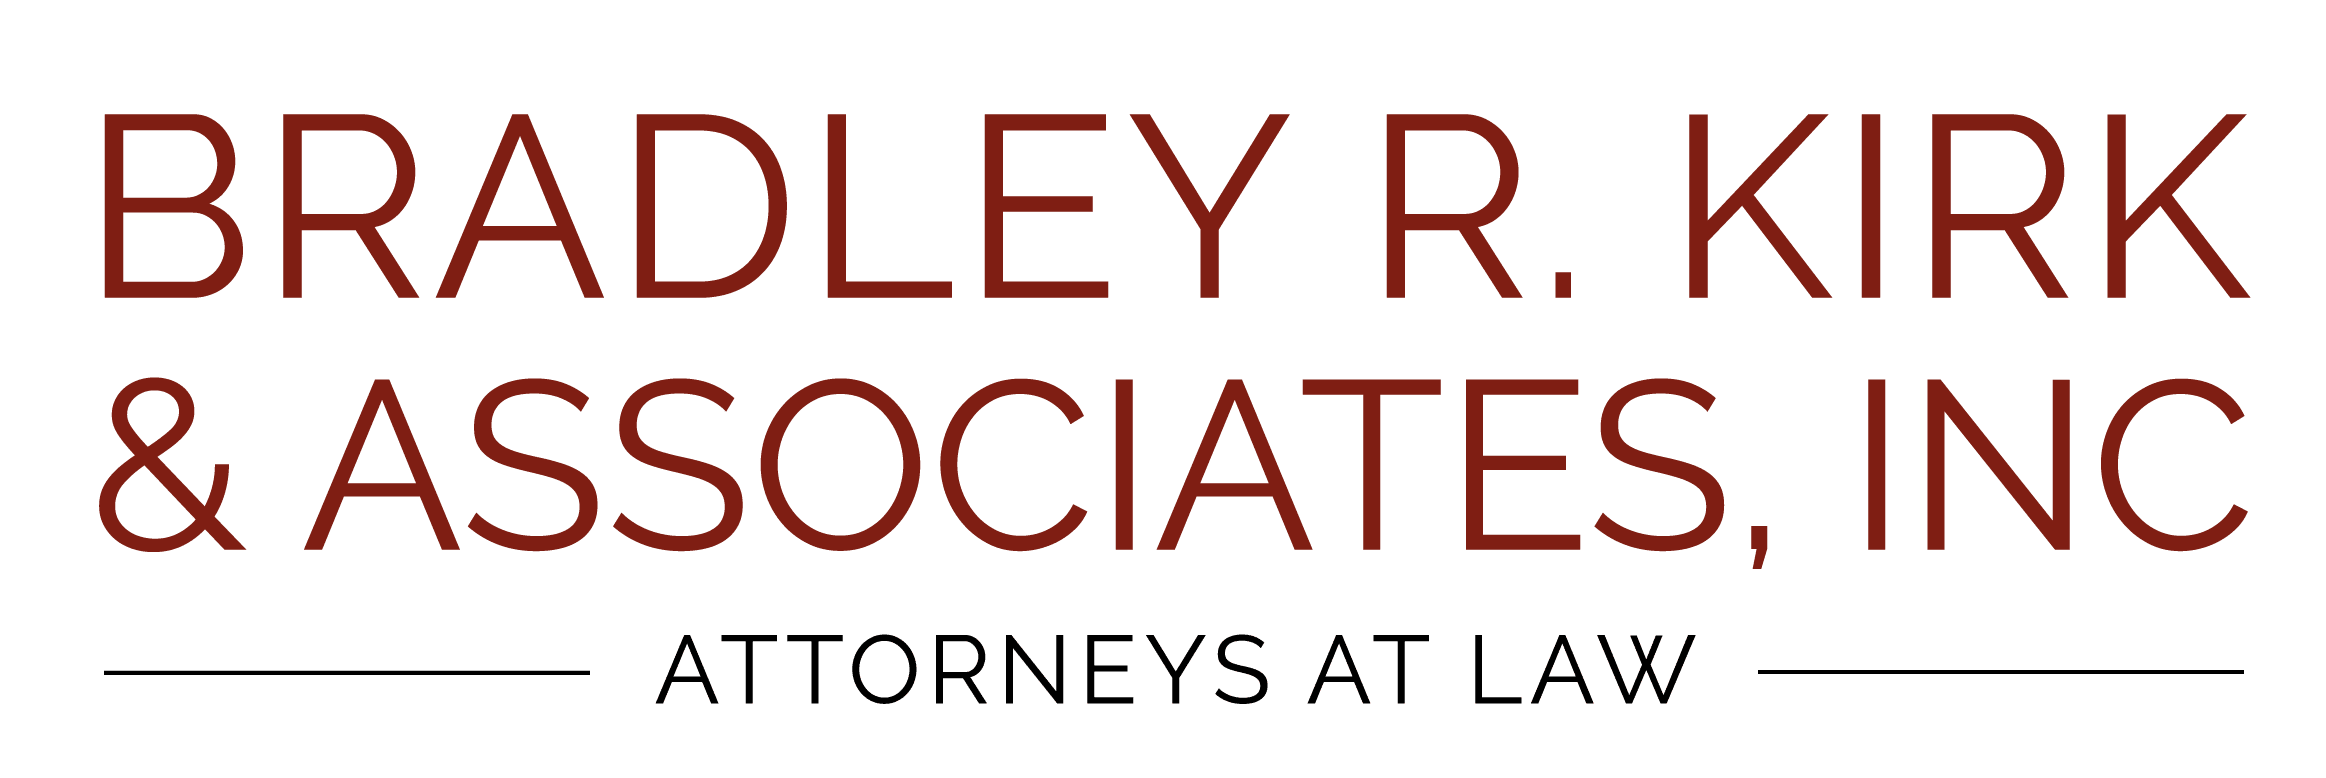 Bradley R. Kirk & Associates, Inc.